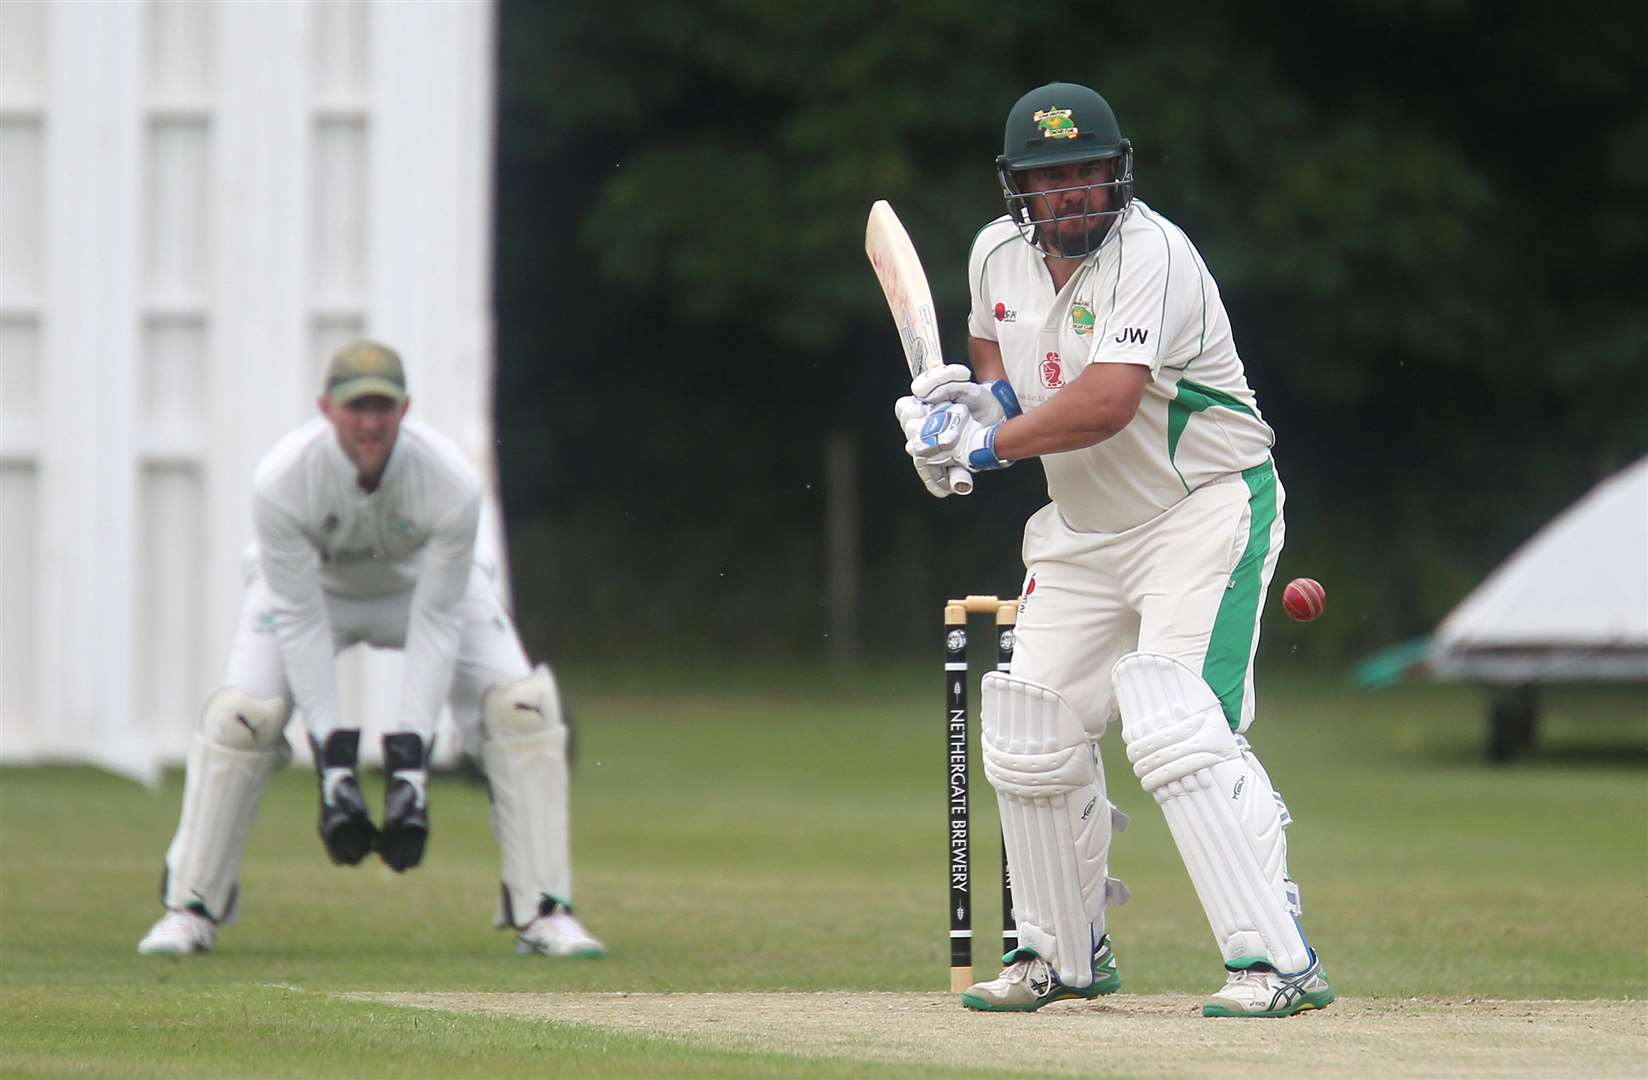 Long Melford v Walsham - Jason Wade bats for Long Melford.Pic - Richard Marsham. (2358465)